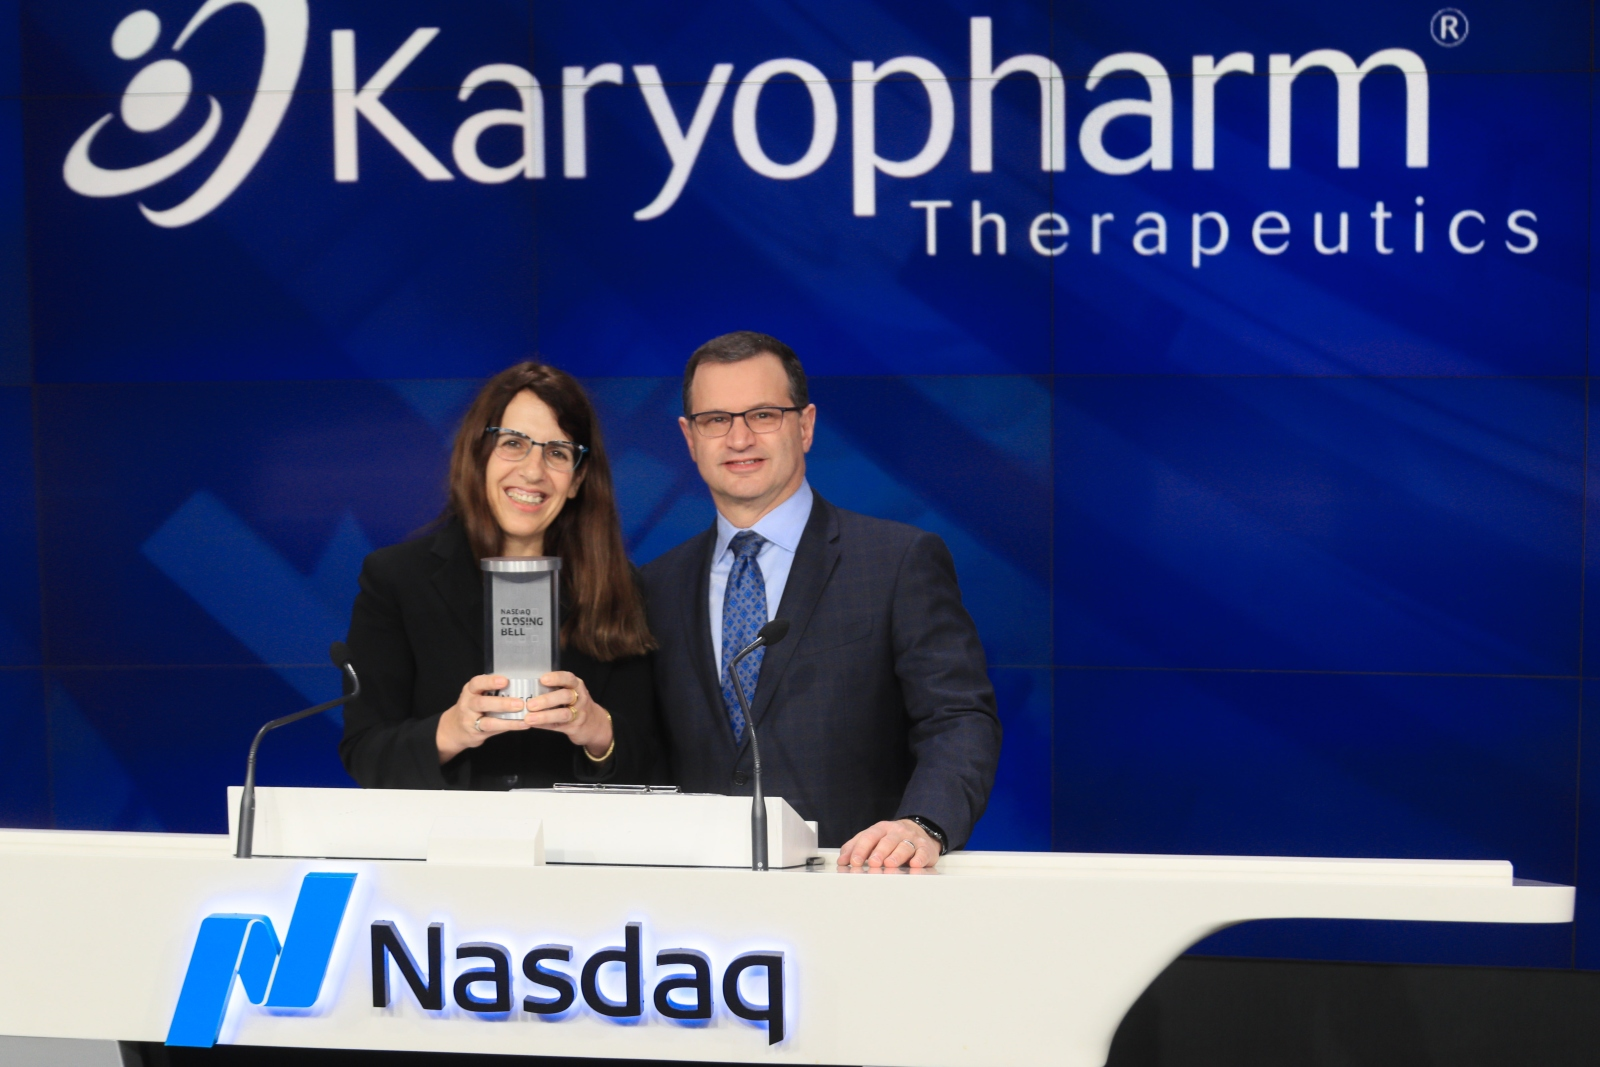 Karyopharm Therapeutics cofounders, President and CSO Sharon Shacham and CEO Dr. Michael Kauffman, ringing the bell at the NASDAQ Stock Exchange. Photo: courtesy